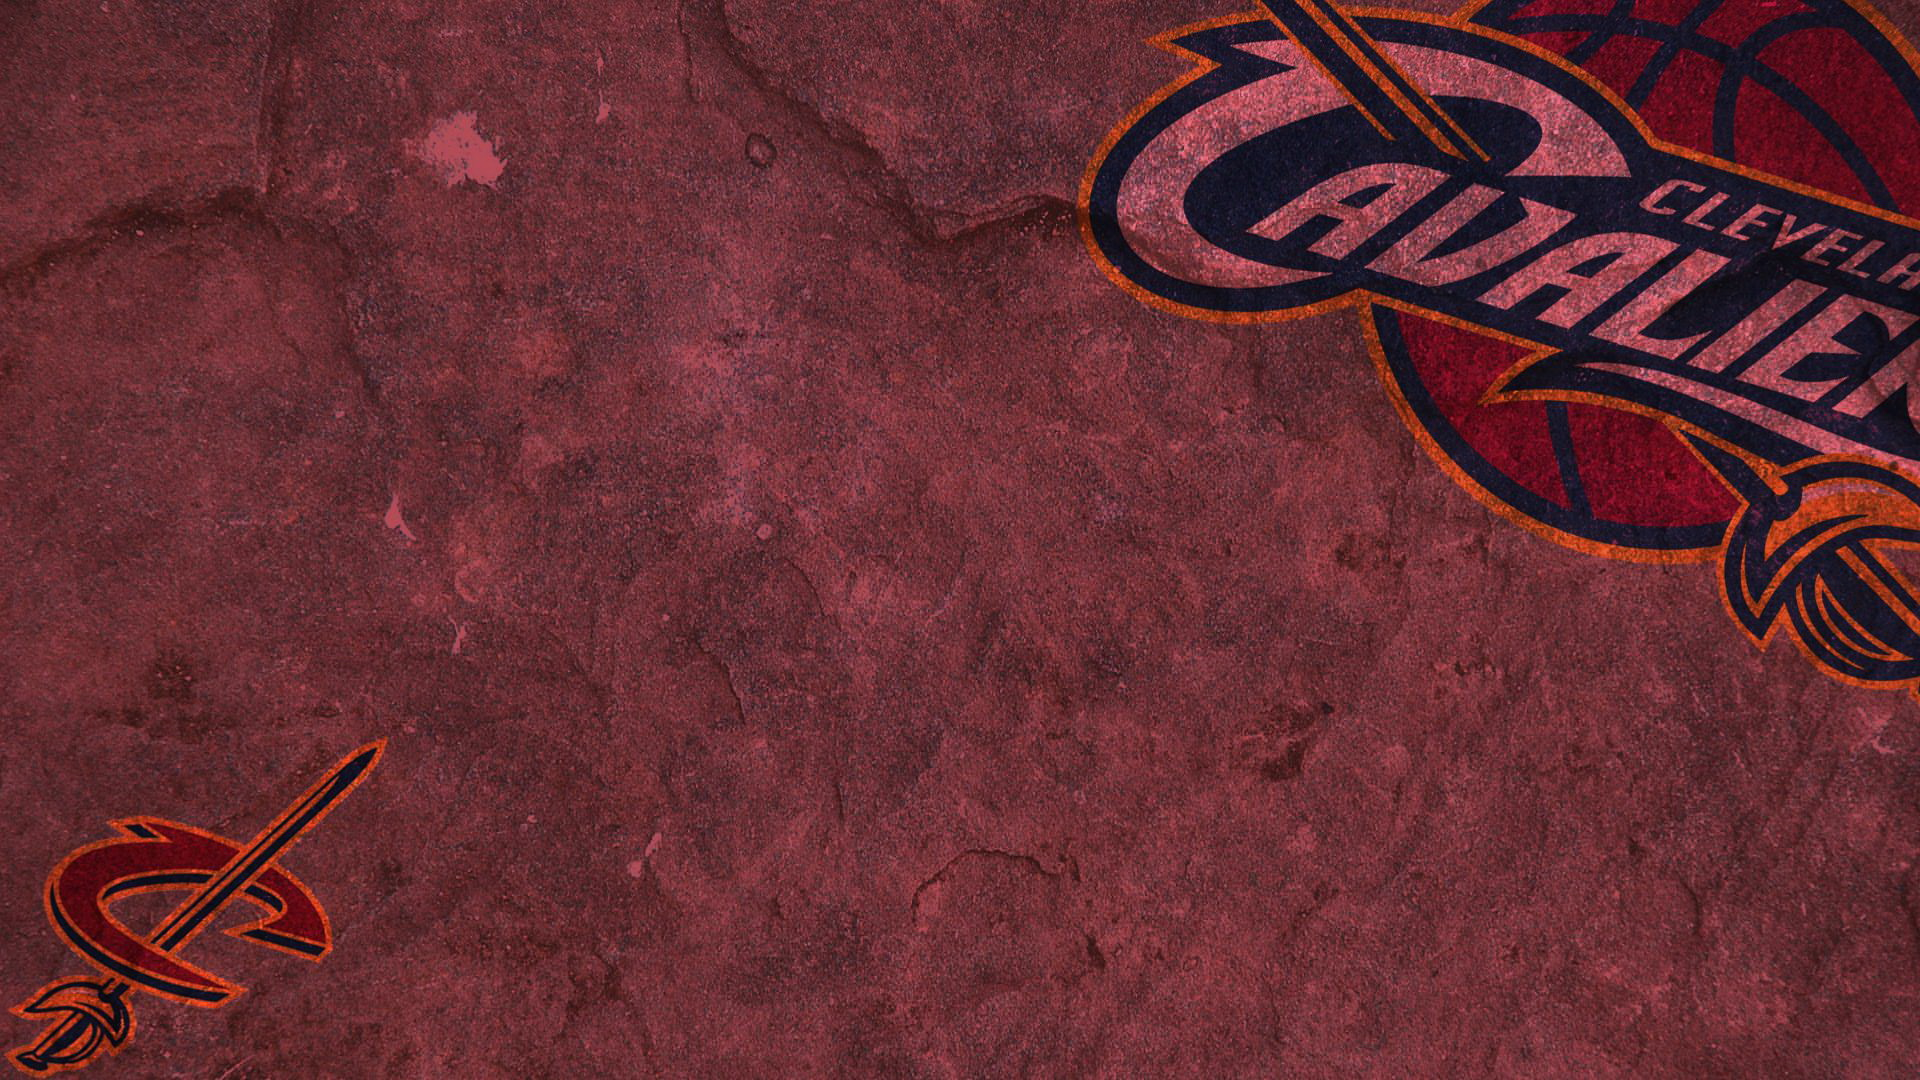 Cleveland Cavaliers HD Wallpapers  PixelsTalk Cleveland cavaliers Wallpapers HD, Desktop Backgrounds, Images and 1920x1080